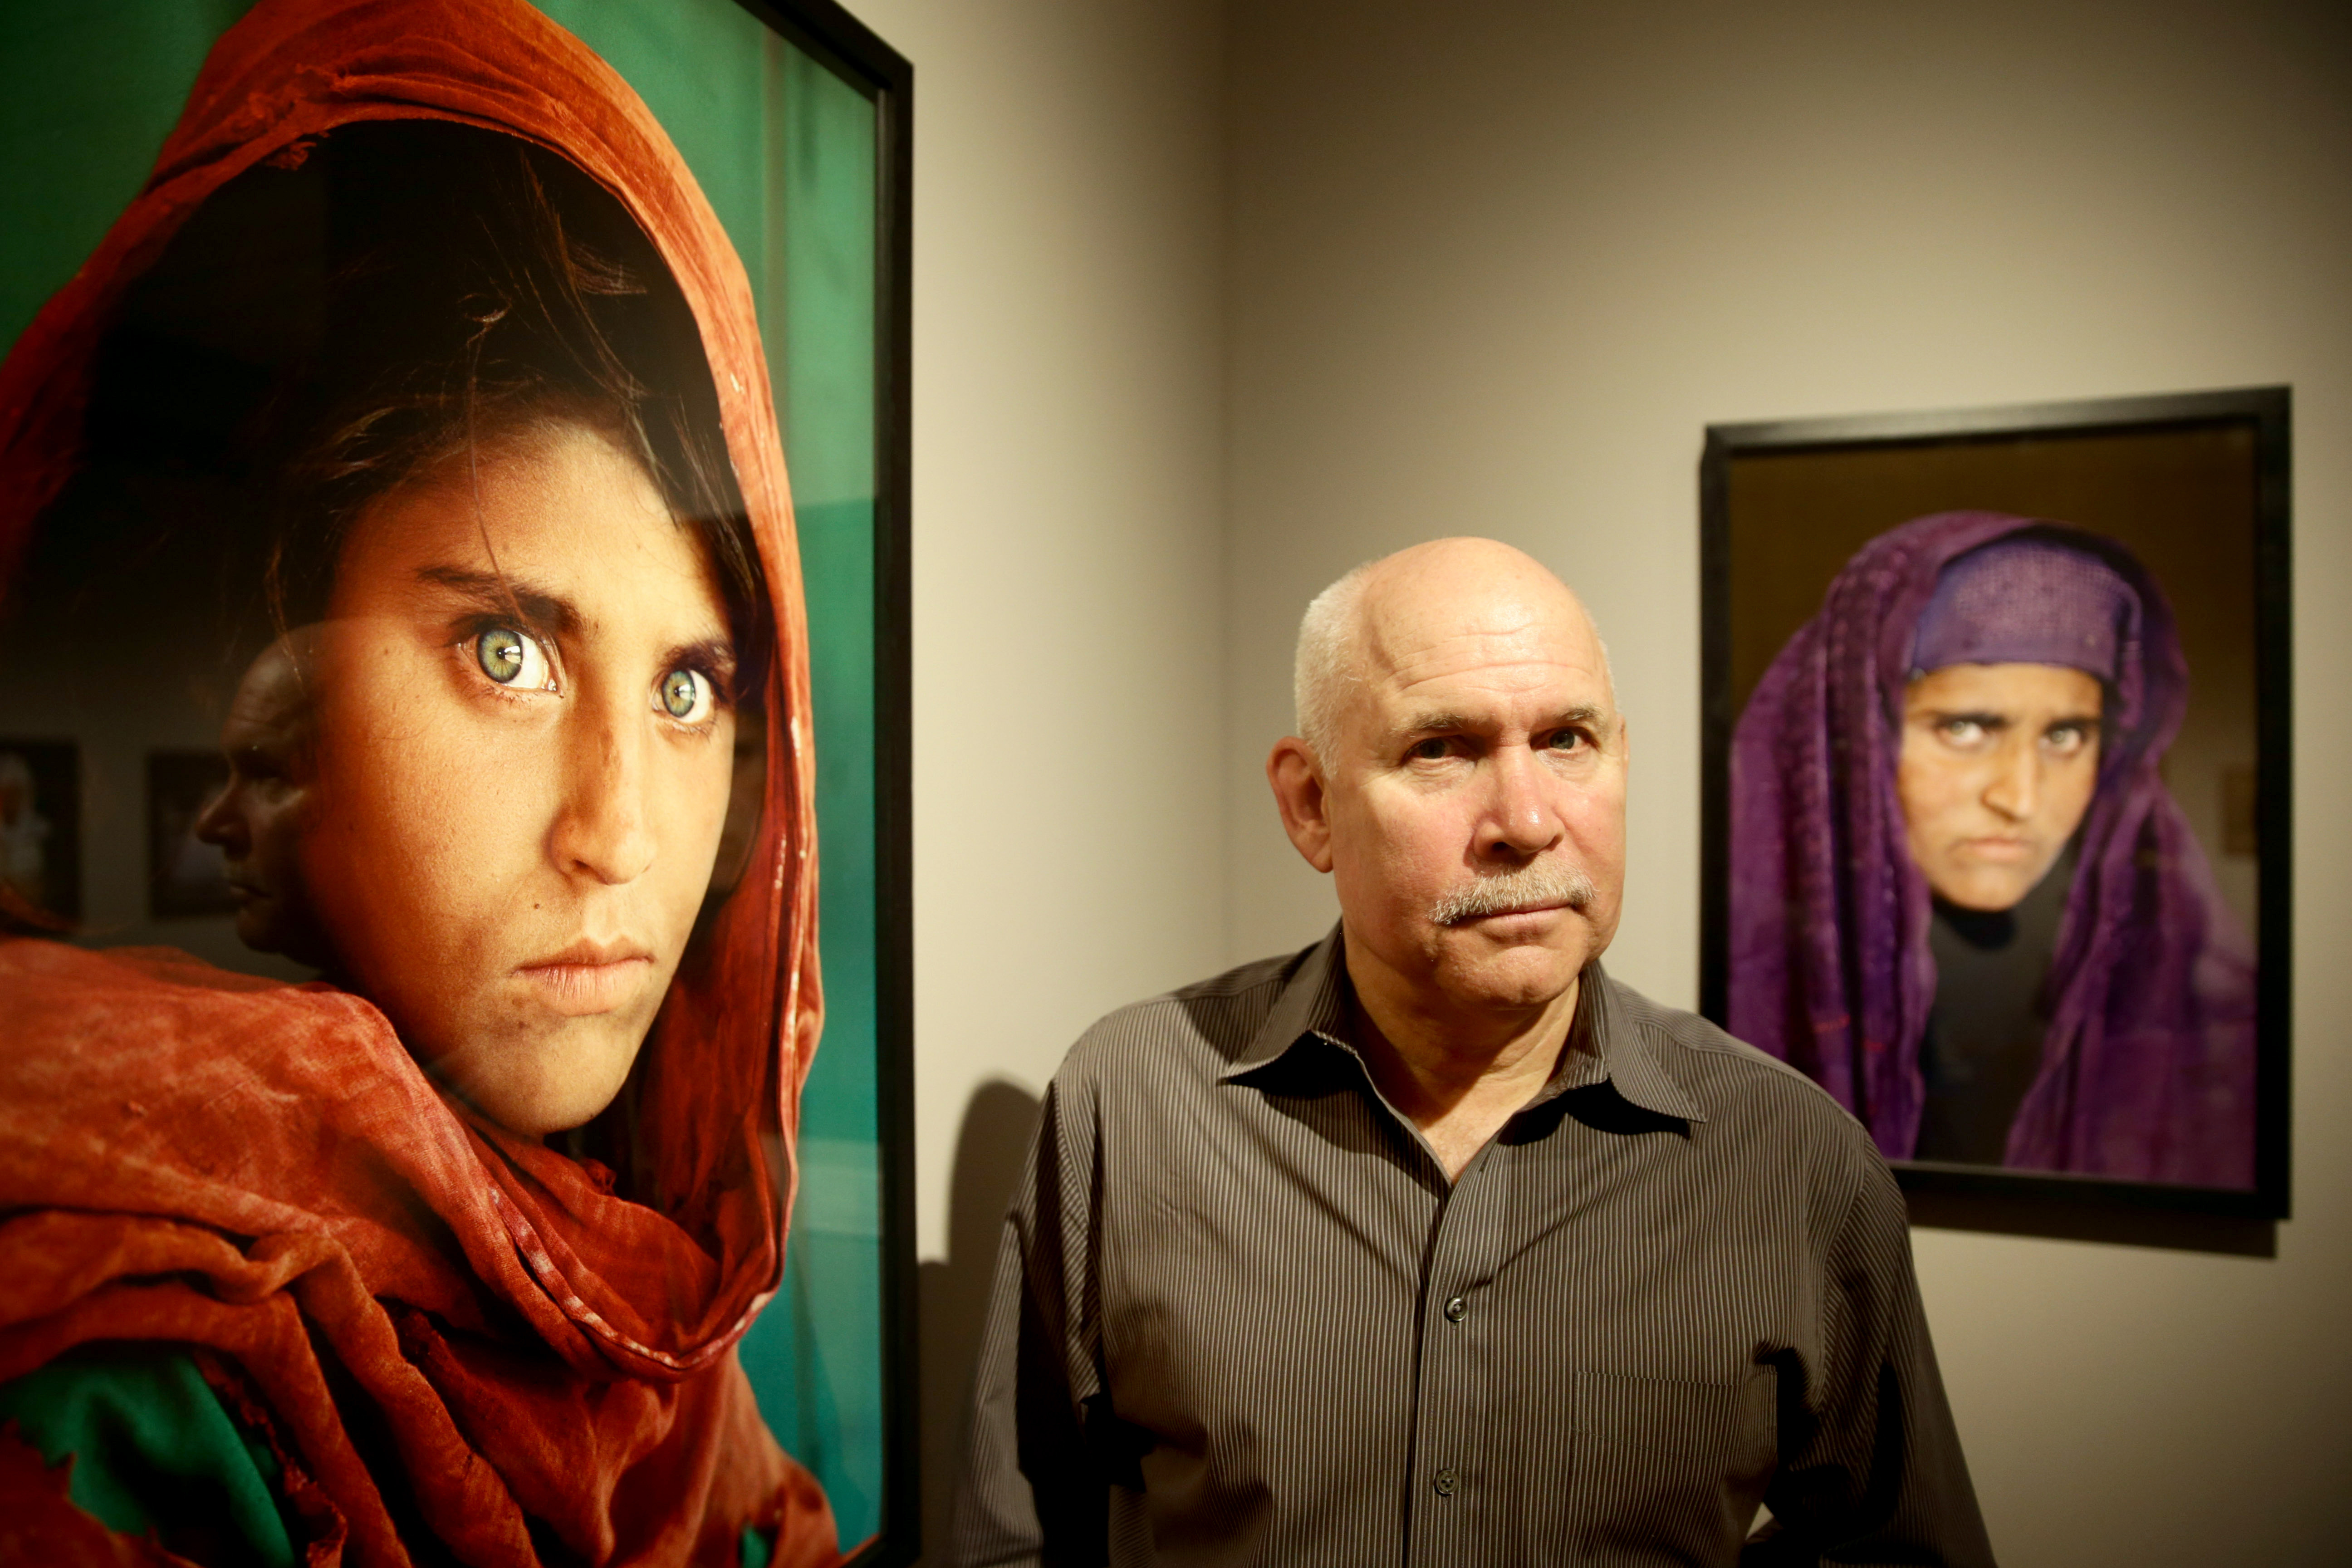 Steve McCurry poses next to his photos of the  Afghan Girl  named Sharbat Gula in Hamburg, Germany, on June 27, 2013.